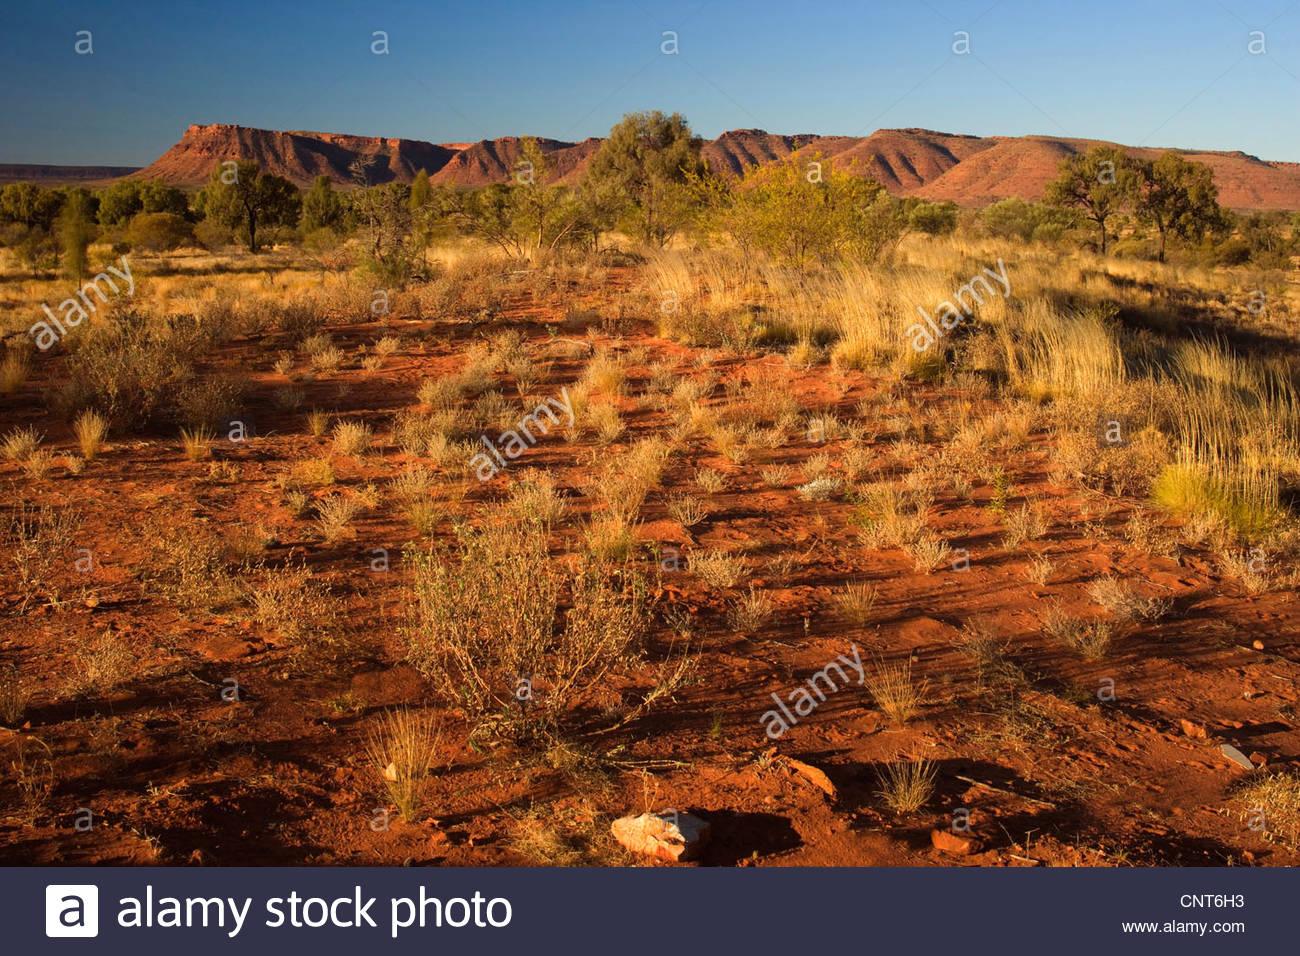 Kings Canyon - red earth, bushland and by sun red ablaze rim cliffs of Kings Canyon in late evening, Australia, - Stock Image